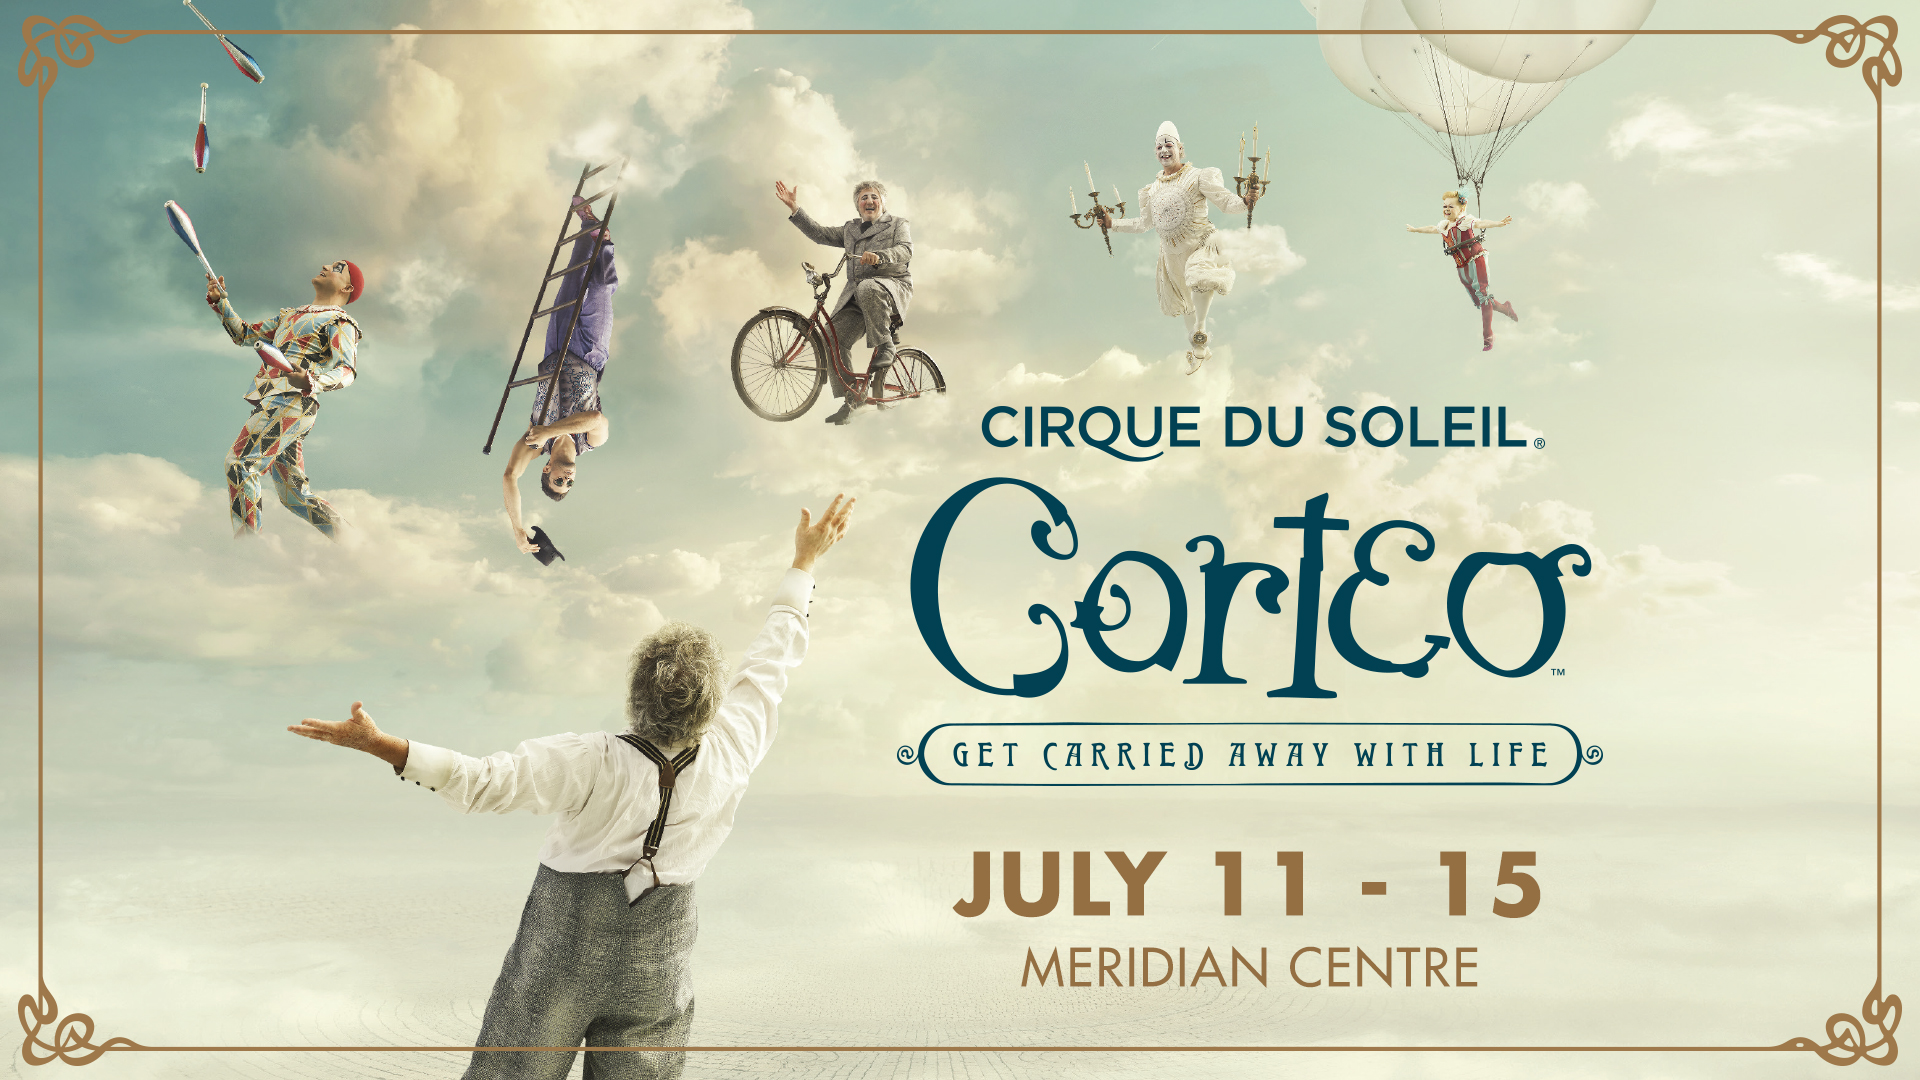 Summersault into Spring with the Cirque du Soleil!